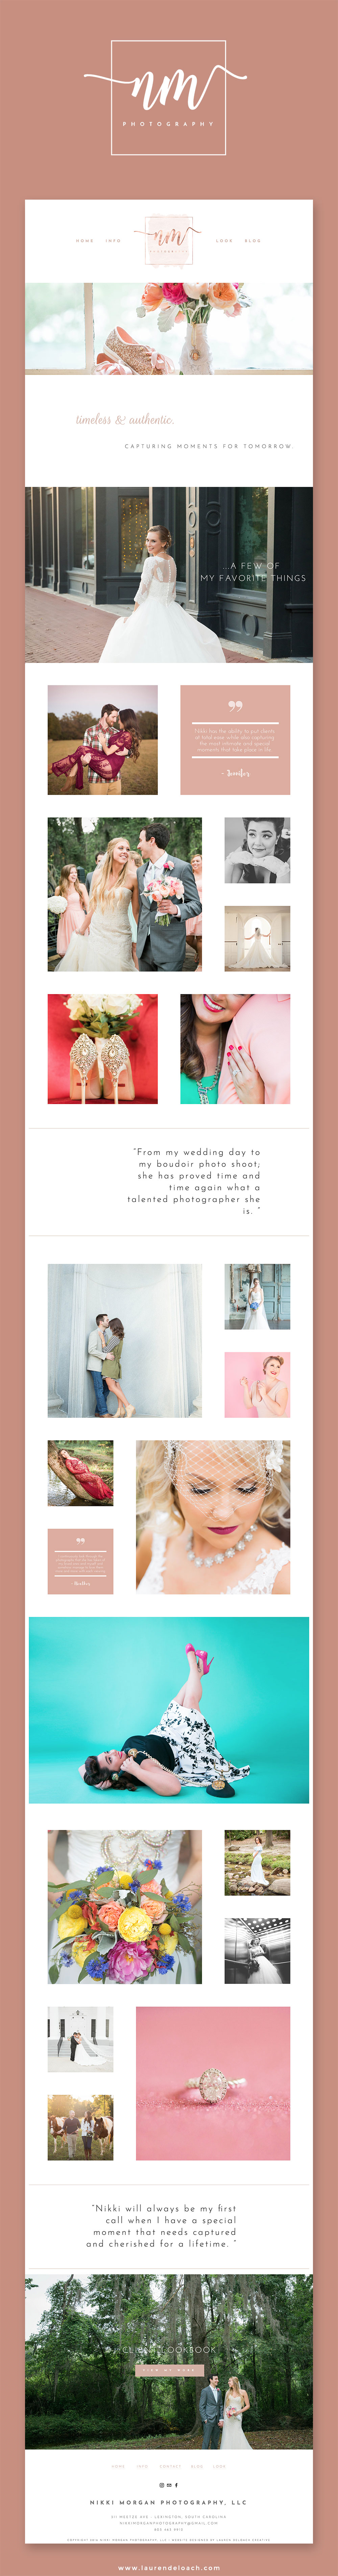 Website full screenshot (will later use this to pin in Pinterest)